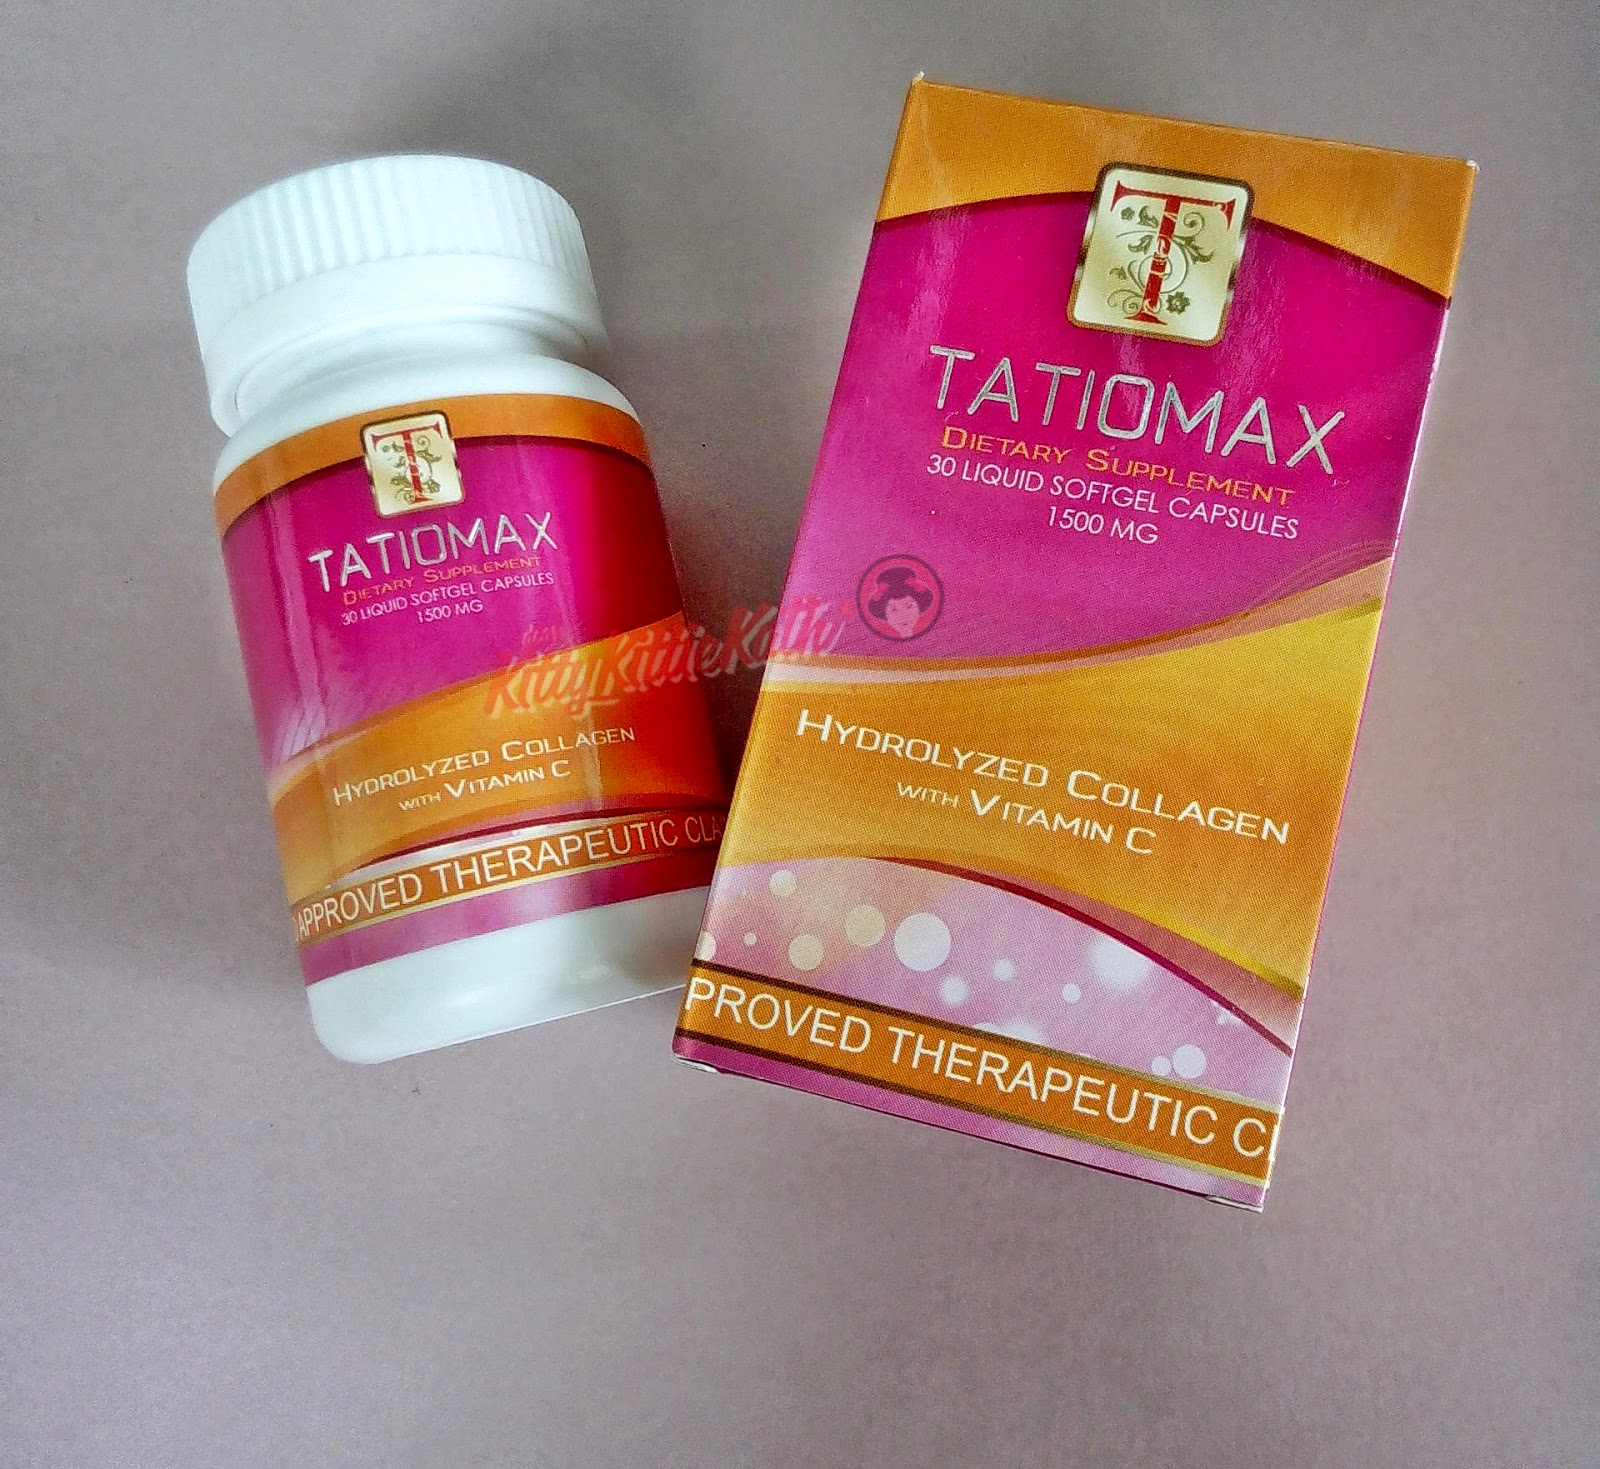 Product Review Tatiomax Hydrolyzed Collagen With Vitamin C Dear White Vit